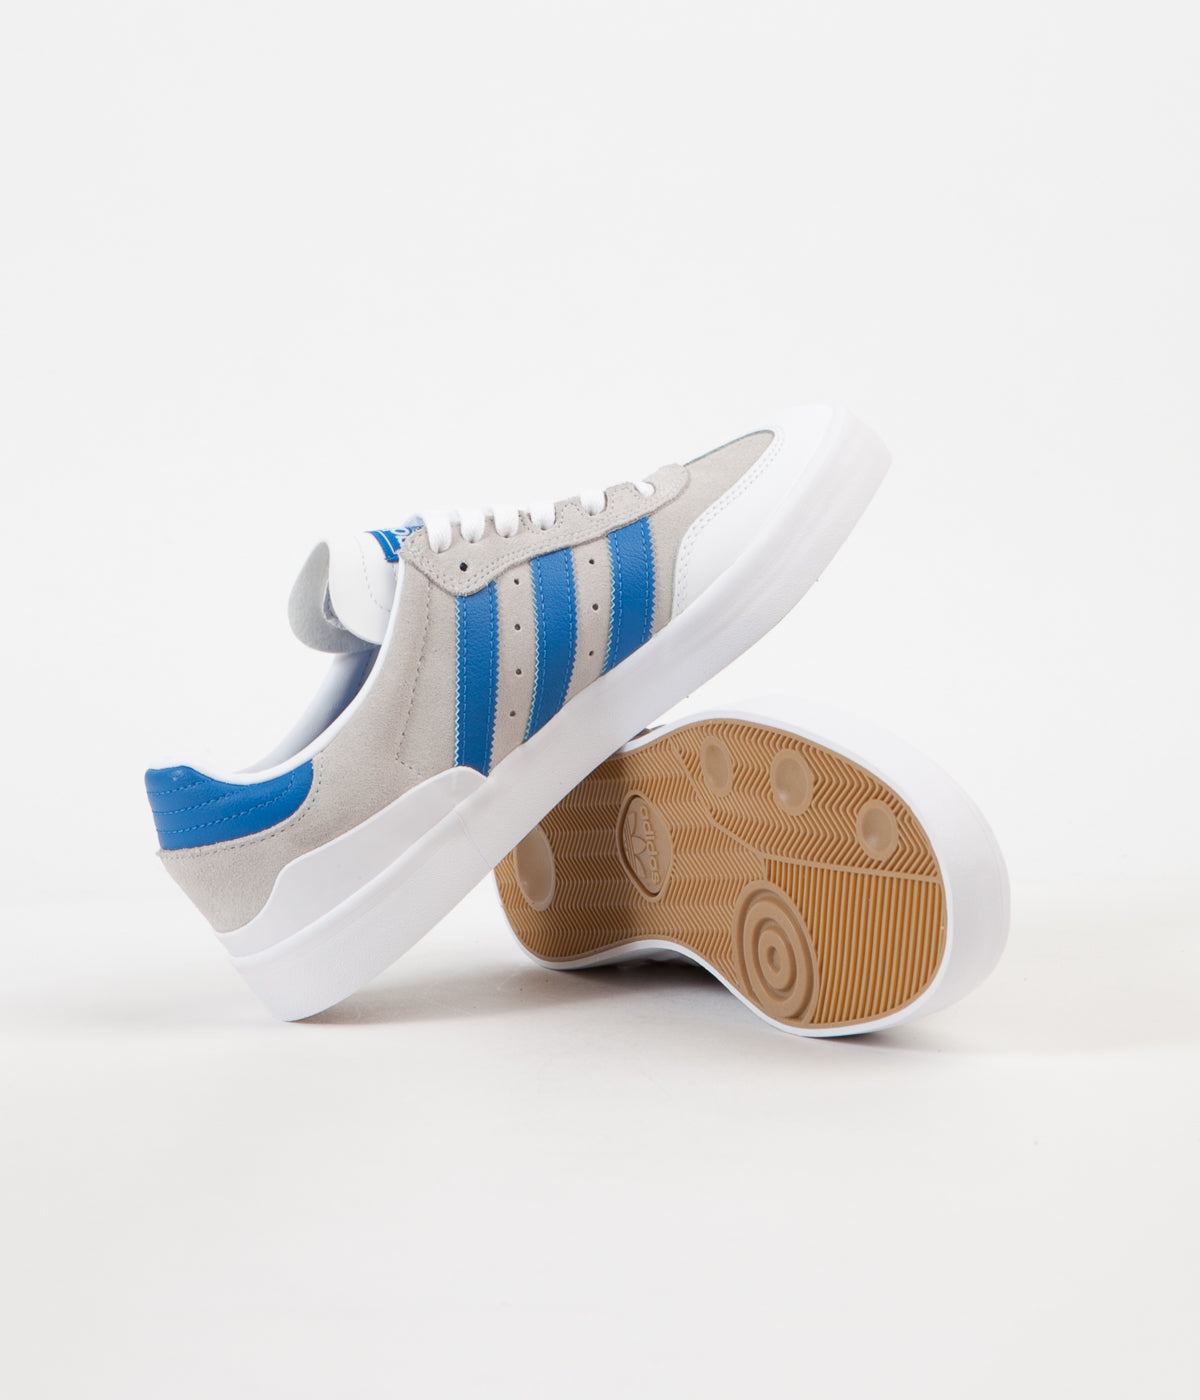 Adidas Busenitz Vulc RX Shoes - Crystal White / Bluebird / White